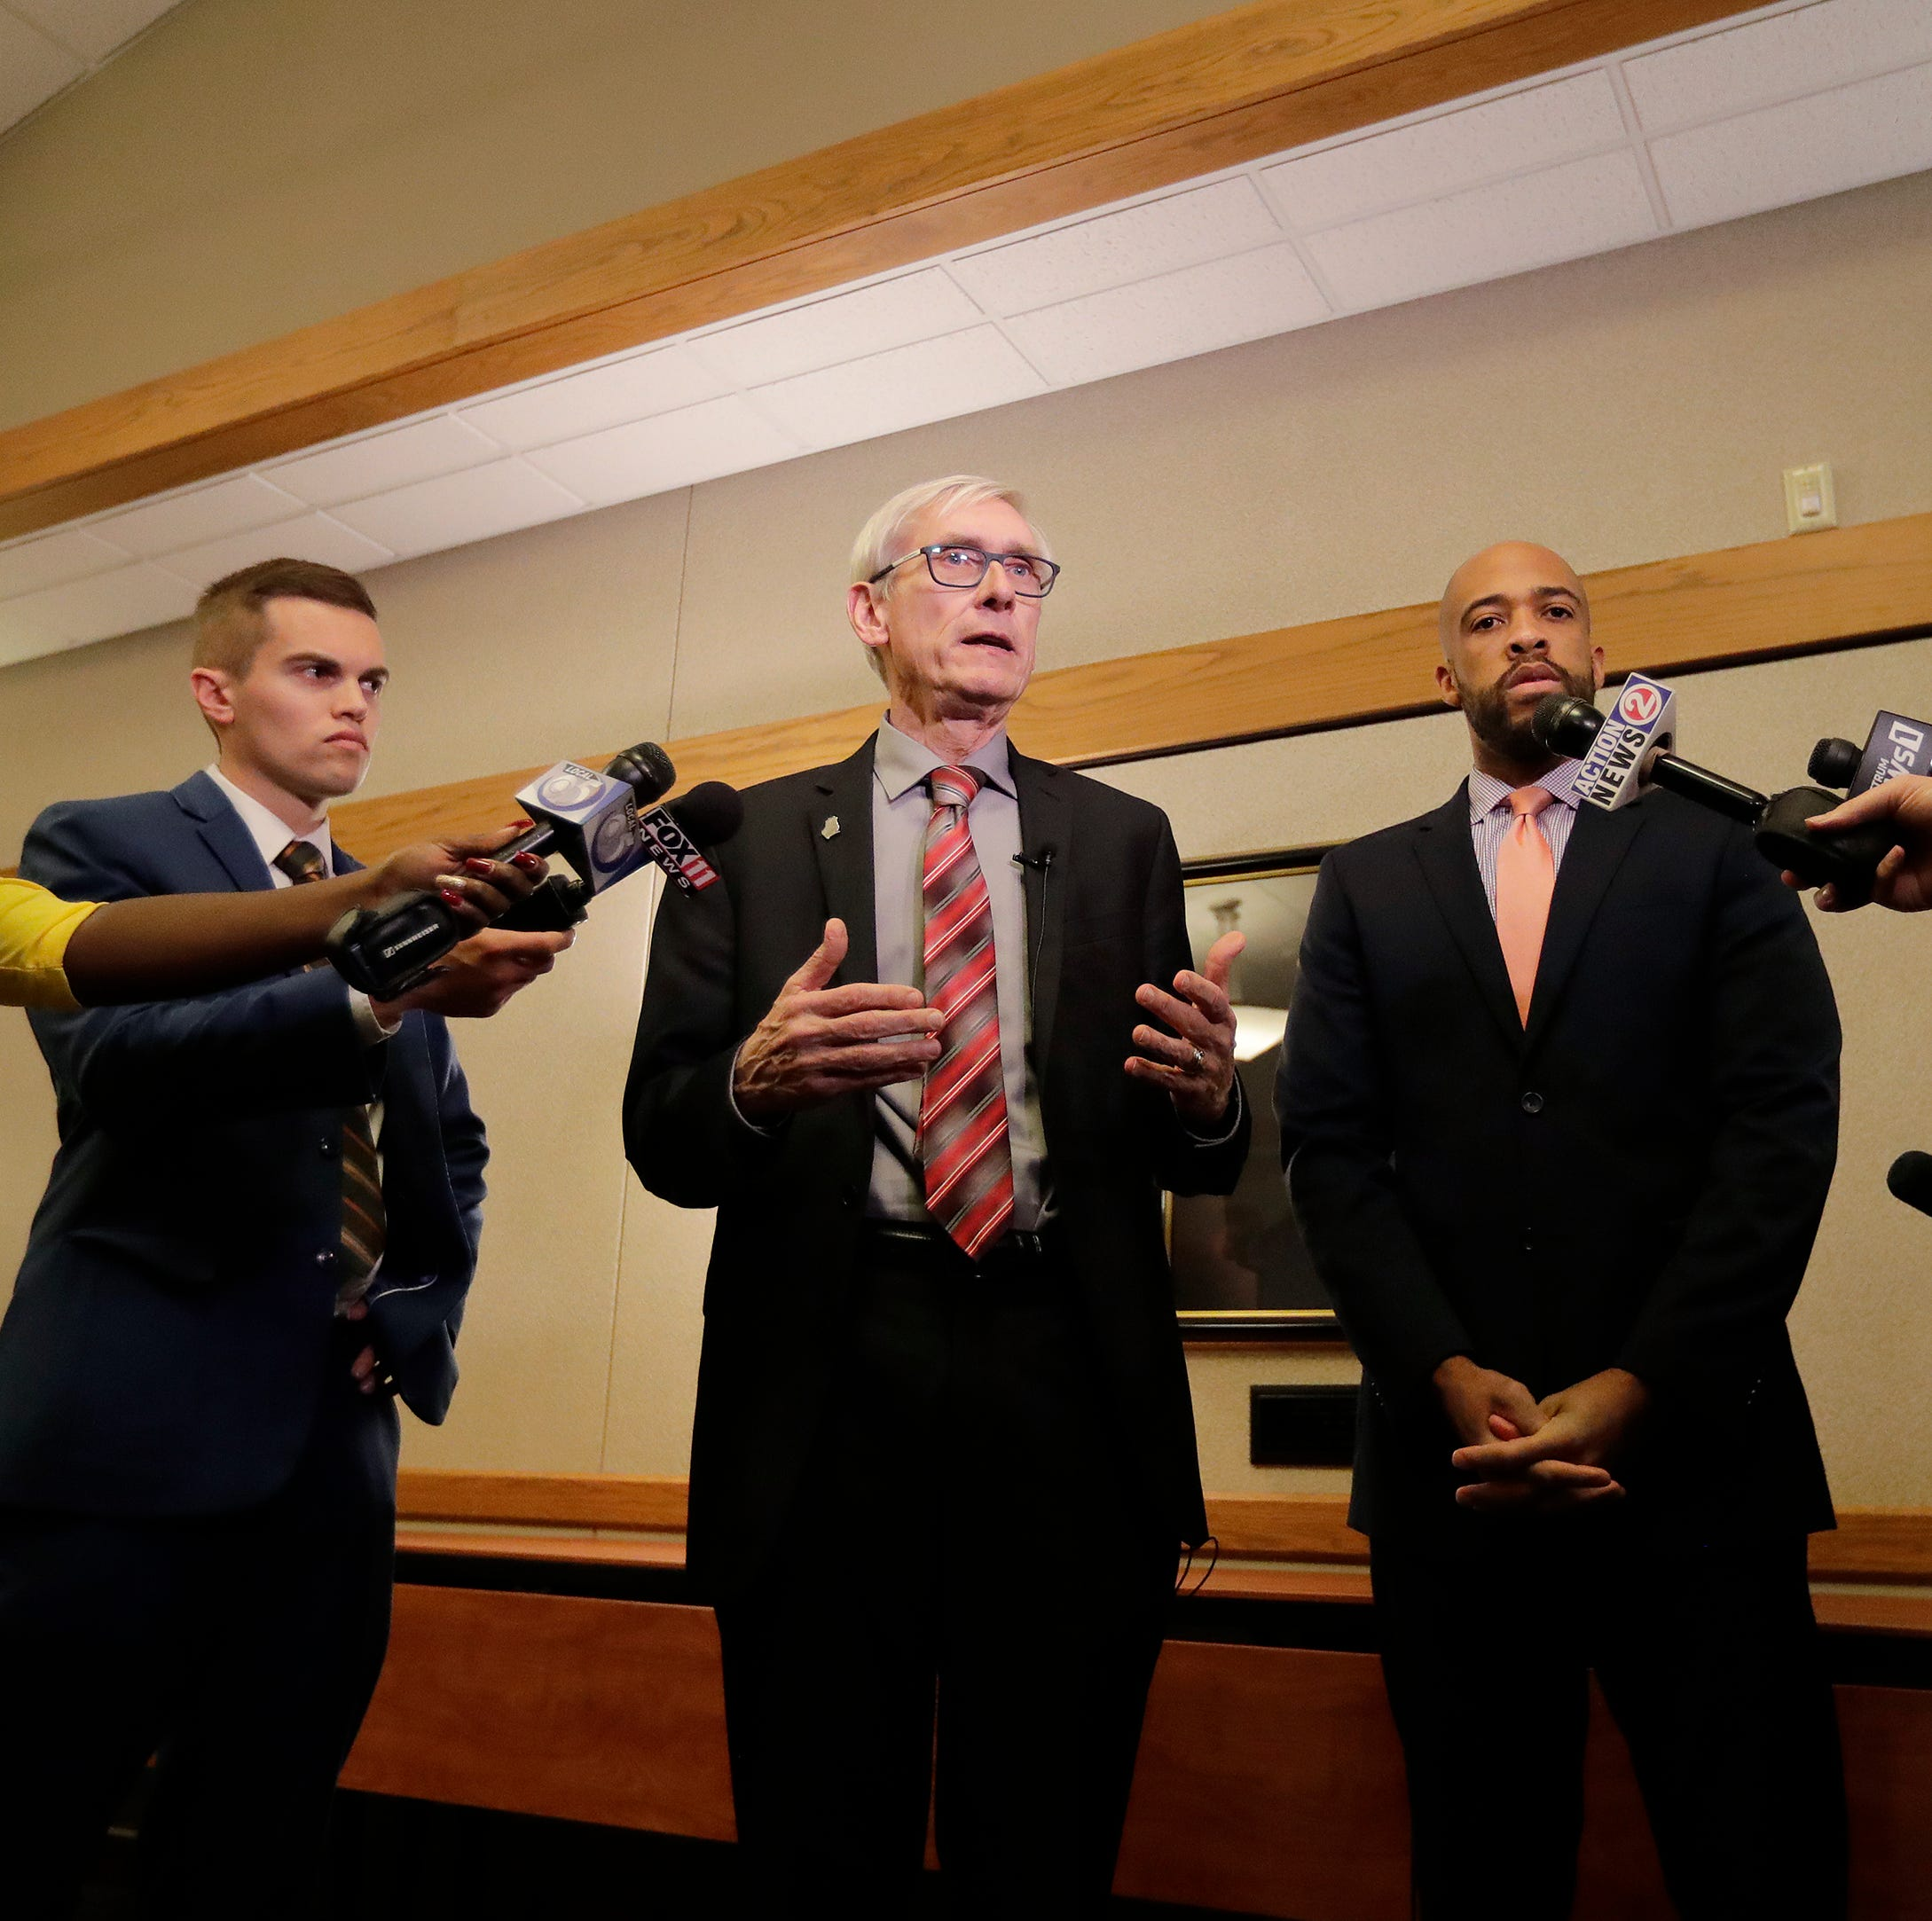 Tony Evers, Mandela Barnes hold Green Bay listening session amid lame-duck tension